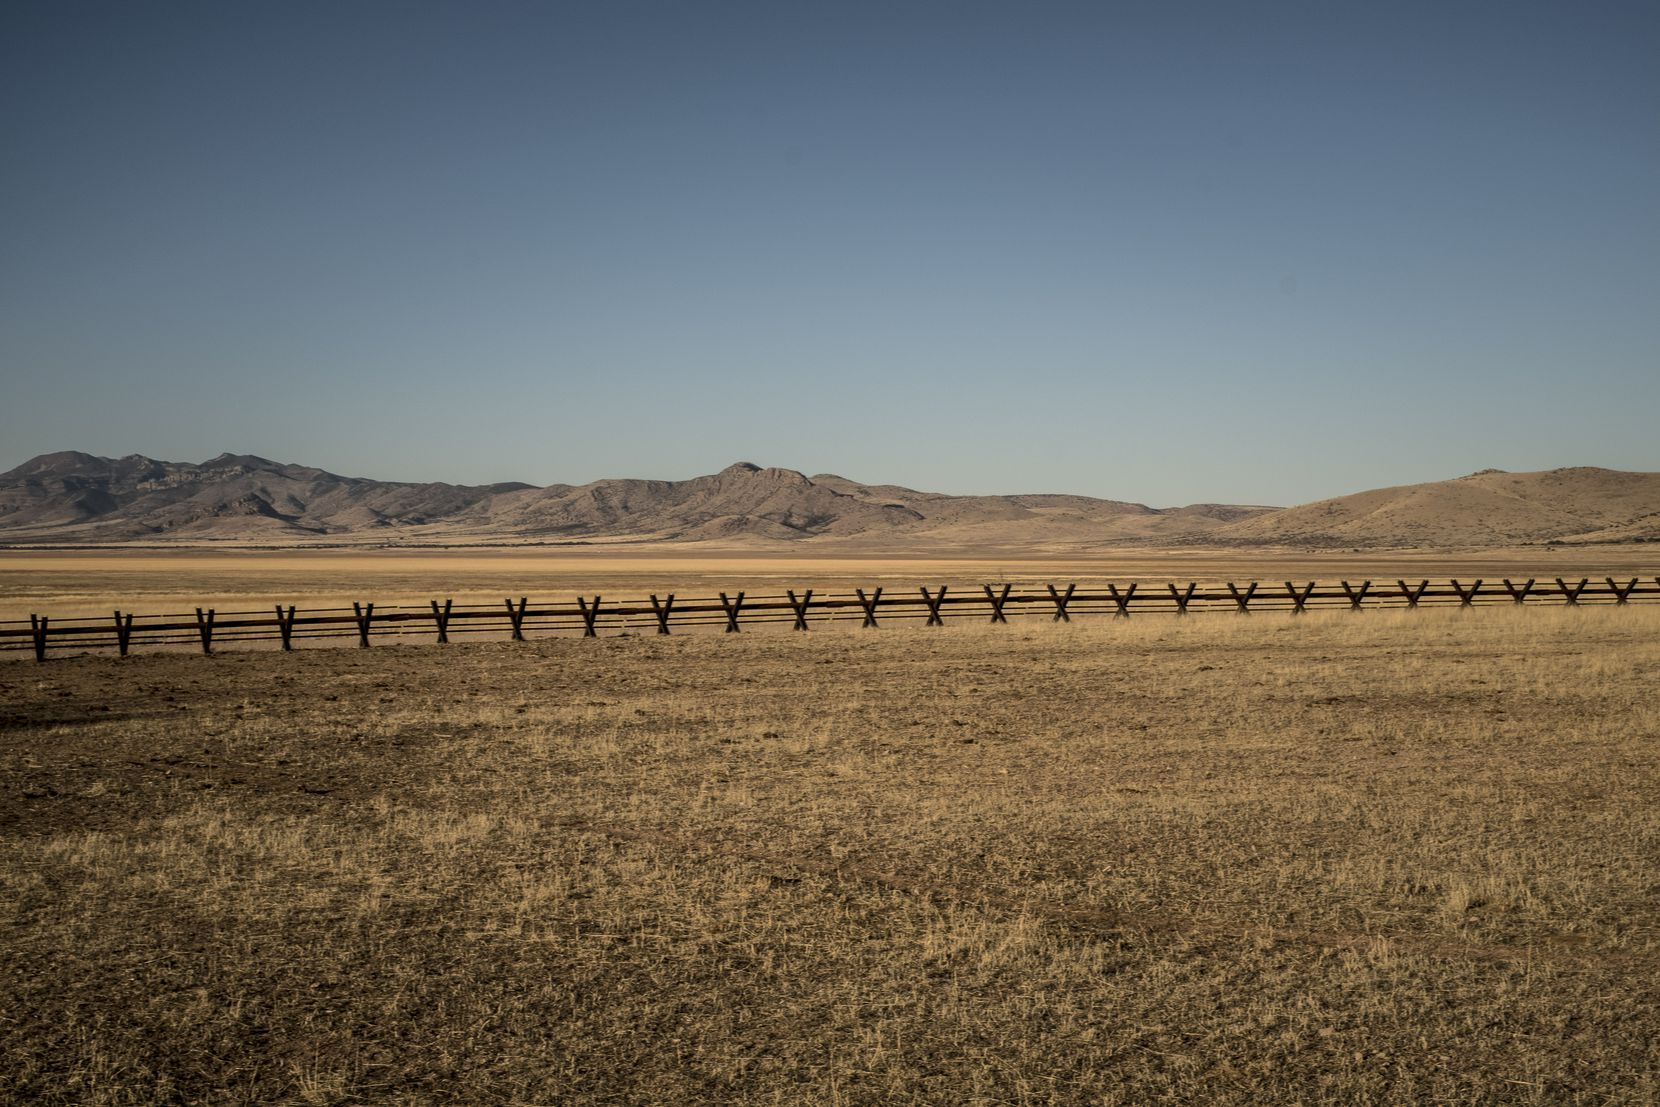 The border fence, here composed of X-shaped barriers, passes through ranching land on the border between the state of New Mexico and the country of Mexico, west of El Paso, TX on Jan. 31, 2017. Here, rows of wheat and alfalfa fill the farmland along the edge of Mexico. If a new wall comes, farmers wonder what will happen to Americans who rely on migrant labor. (Bryan Denton/The New York Times)